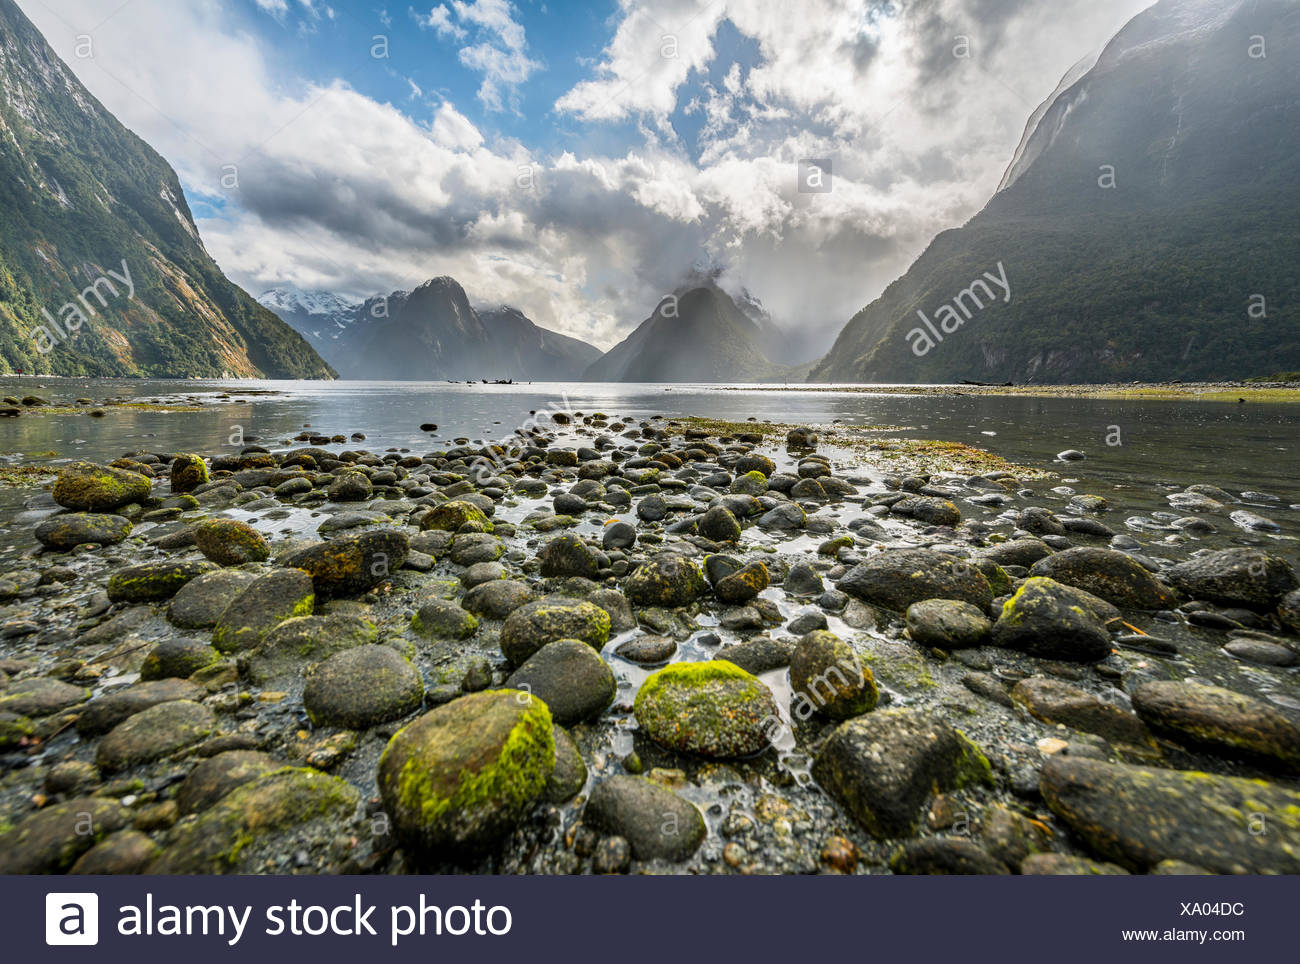 Moss covered stones, Miter Peak, Milford Sound, Fiordland National Park, Te Anau, Southland Region, Southland, New Zealand - Stock Image